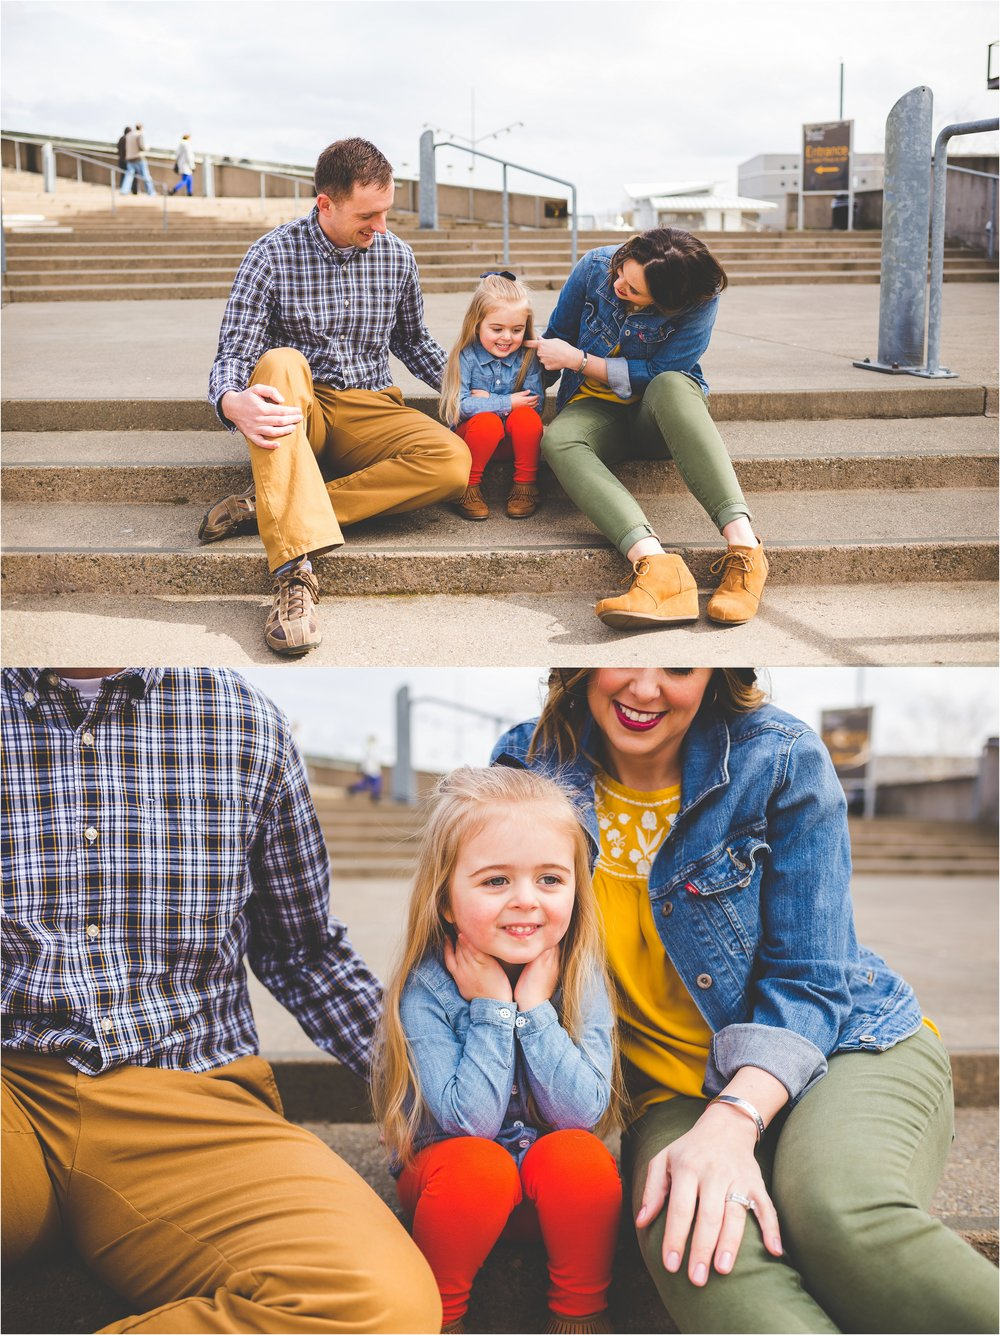 museum-of-glass-tacoma-wa-family-session-jannicka-mayte-tacoma-family-photographer_0006.jpg